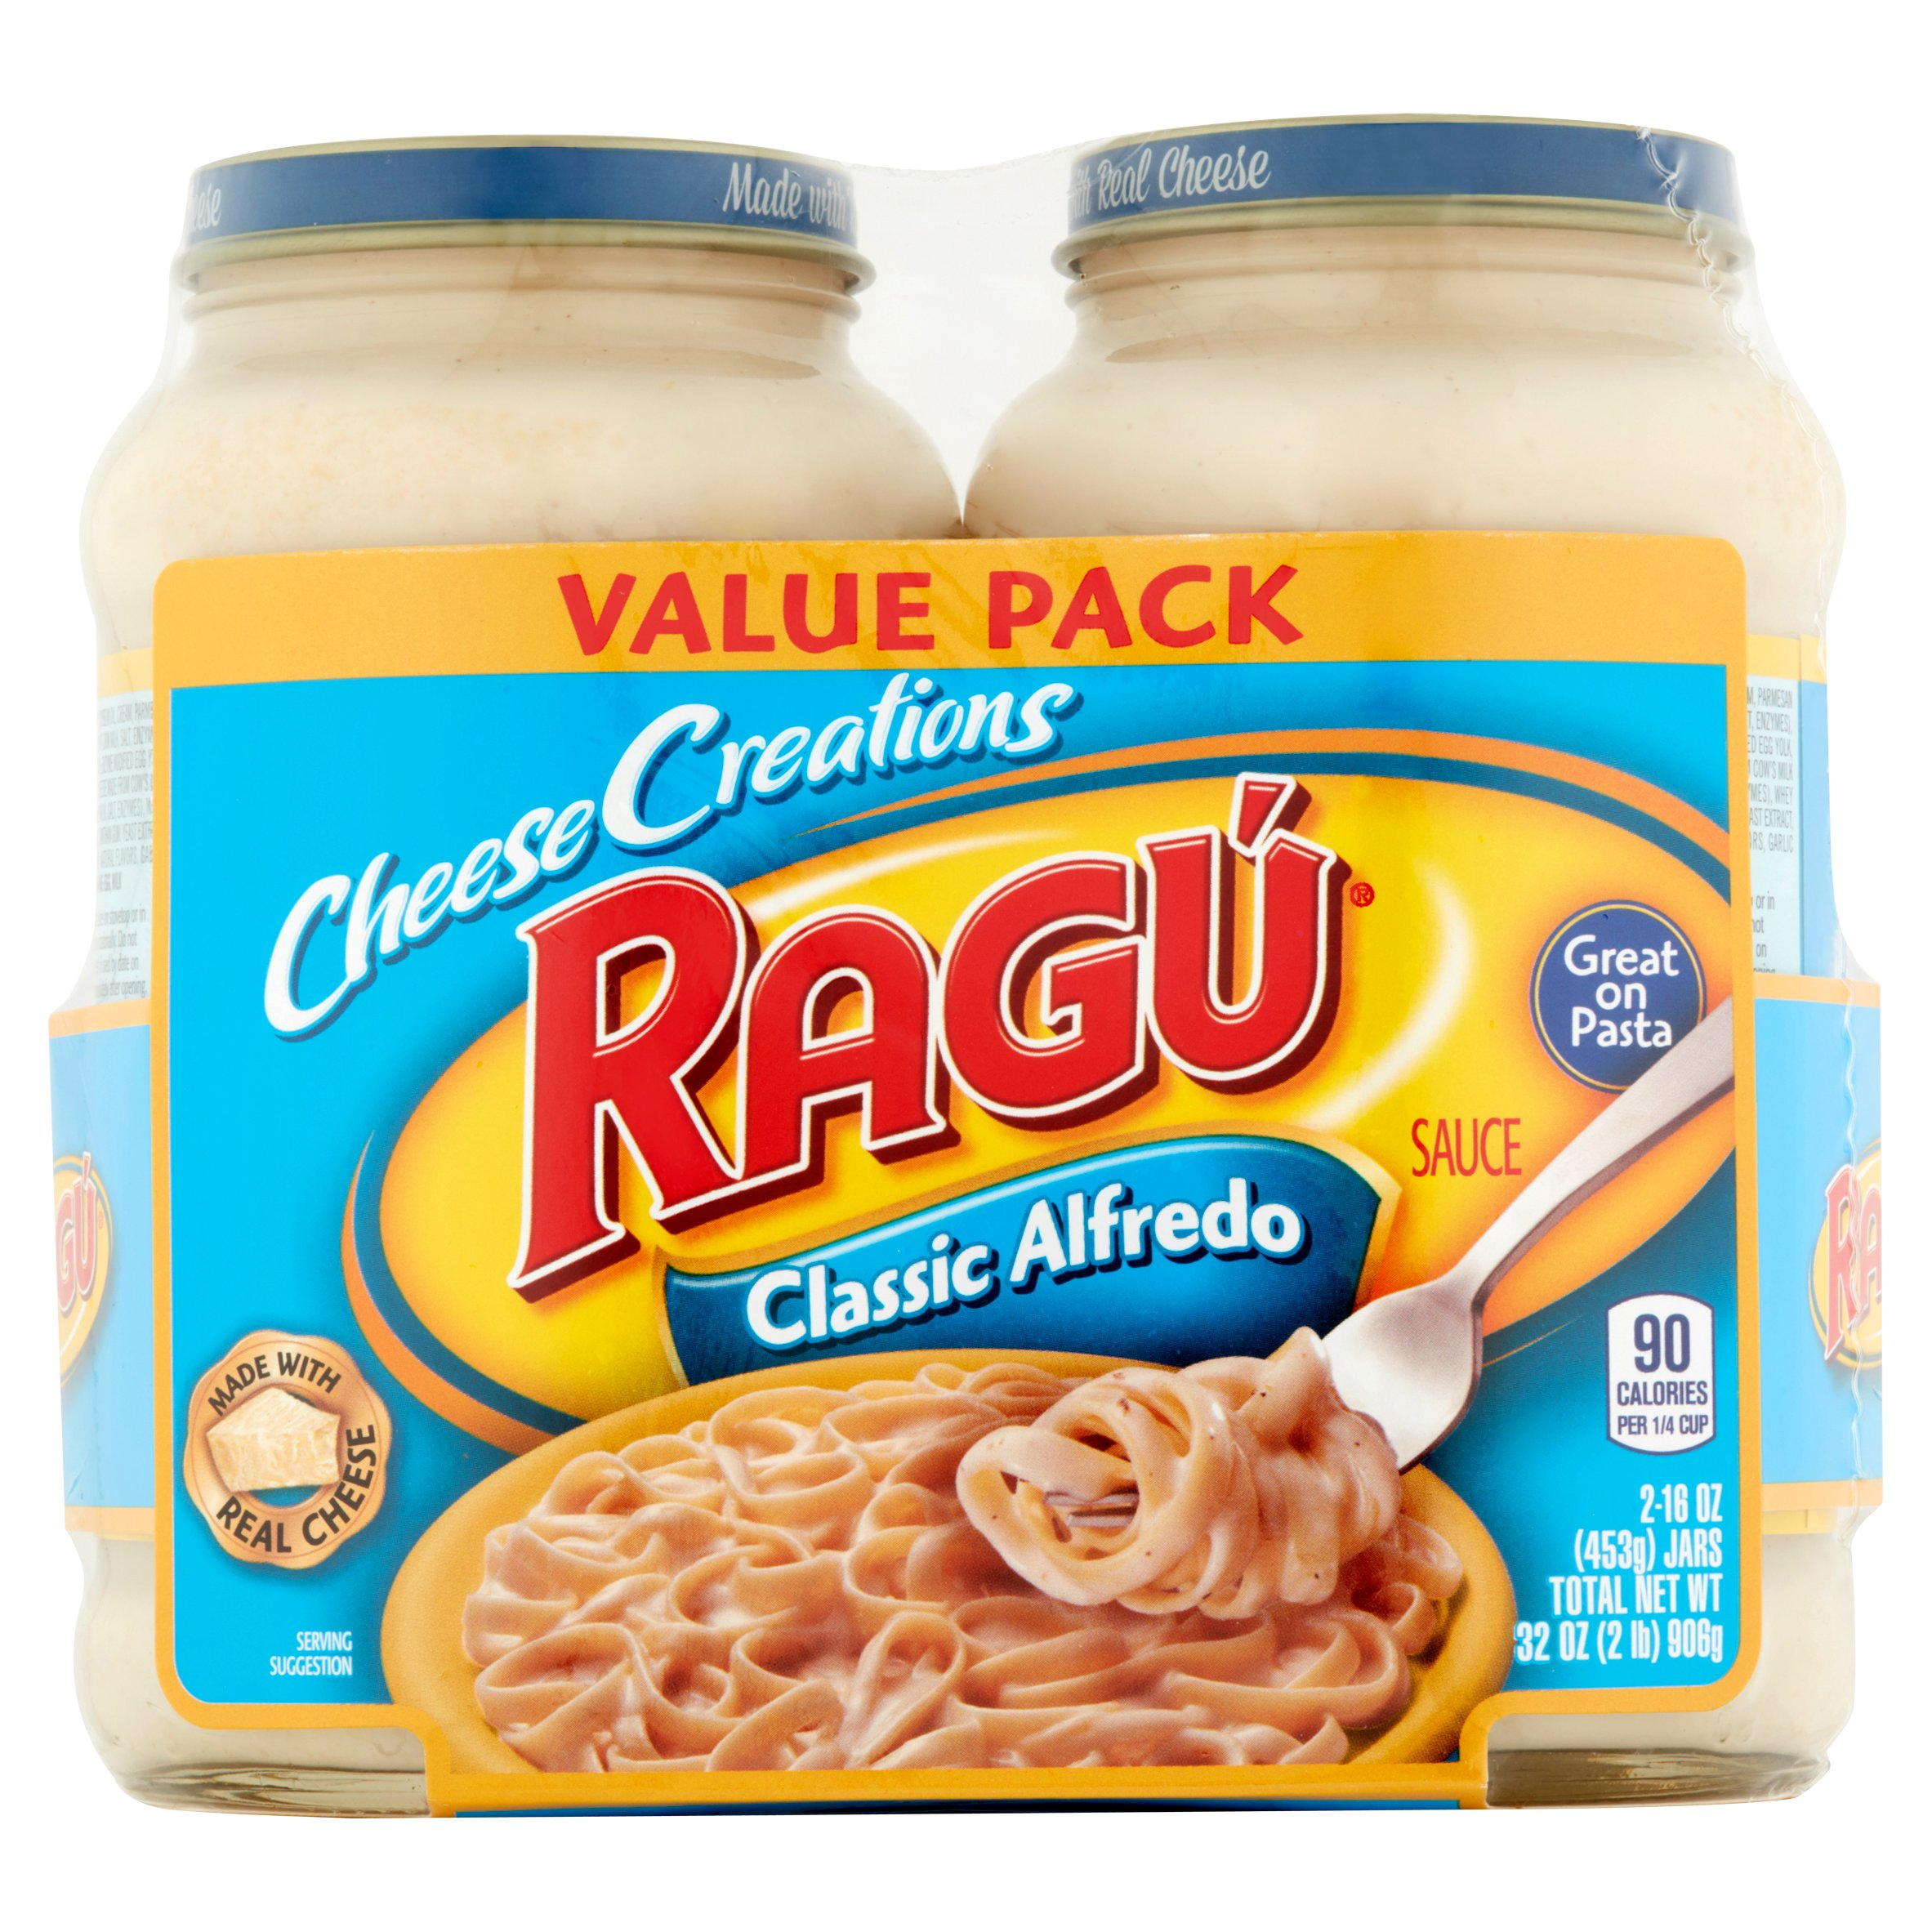 Ragú Cheese Creations Classic Alfredo Sauce 16 oz. each (Pack of 2)